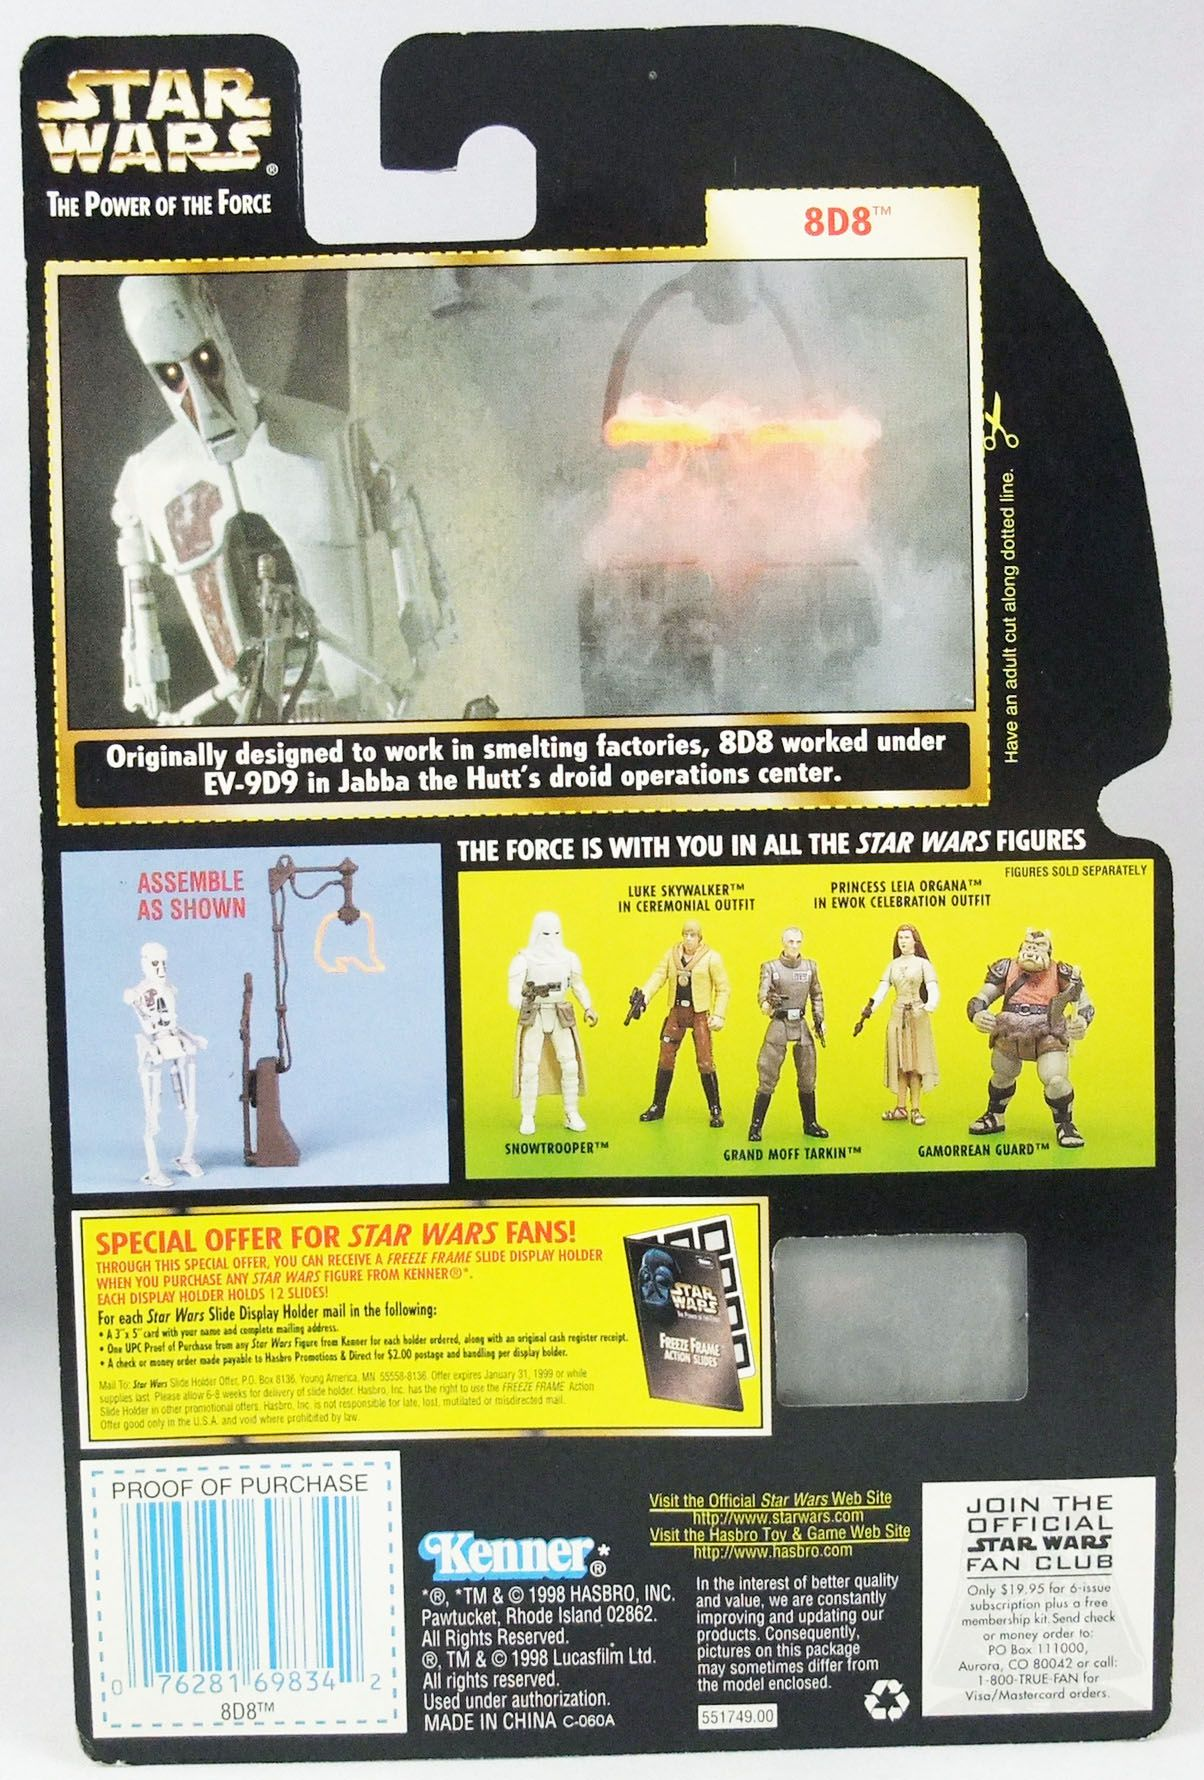 Star Wars (The Power of the Force) - Kenner - 8D8